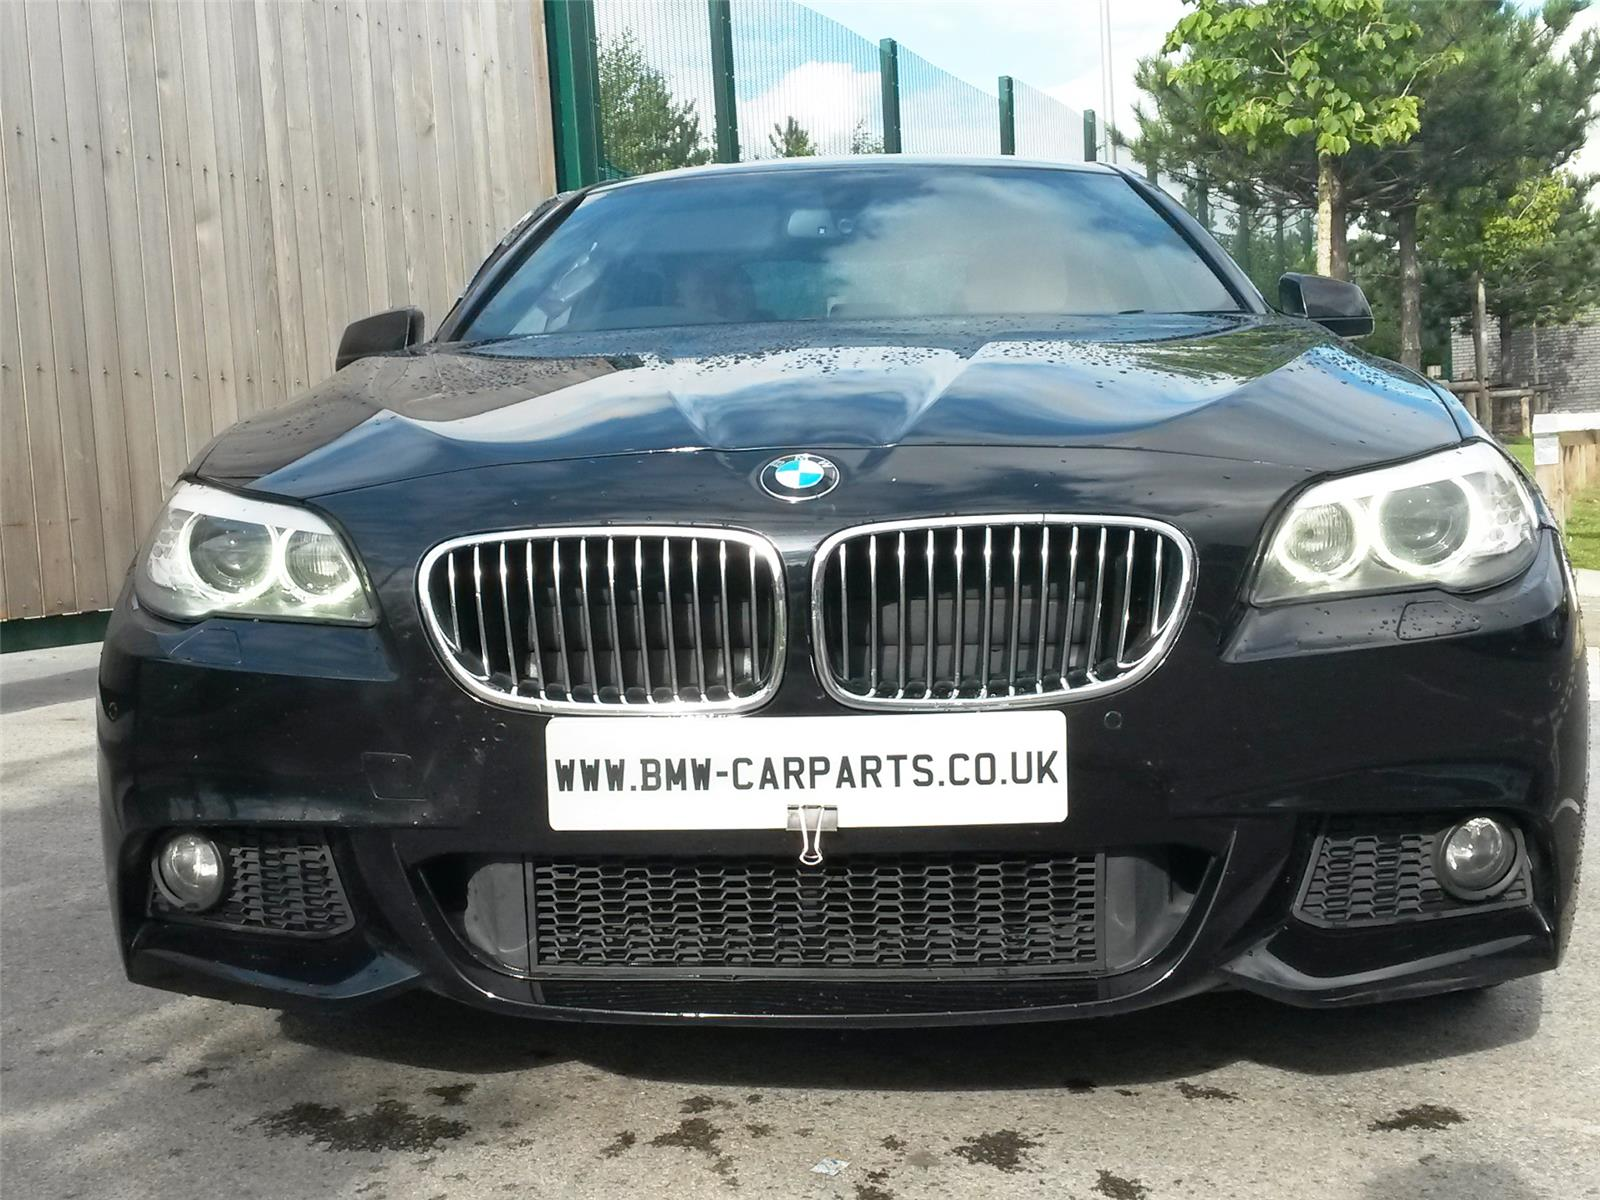 2011 Bmw 5 Series 520d M Sport 4 Door Saloon Diesel Automatic X1 Fuse Box Back To List